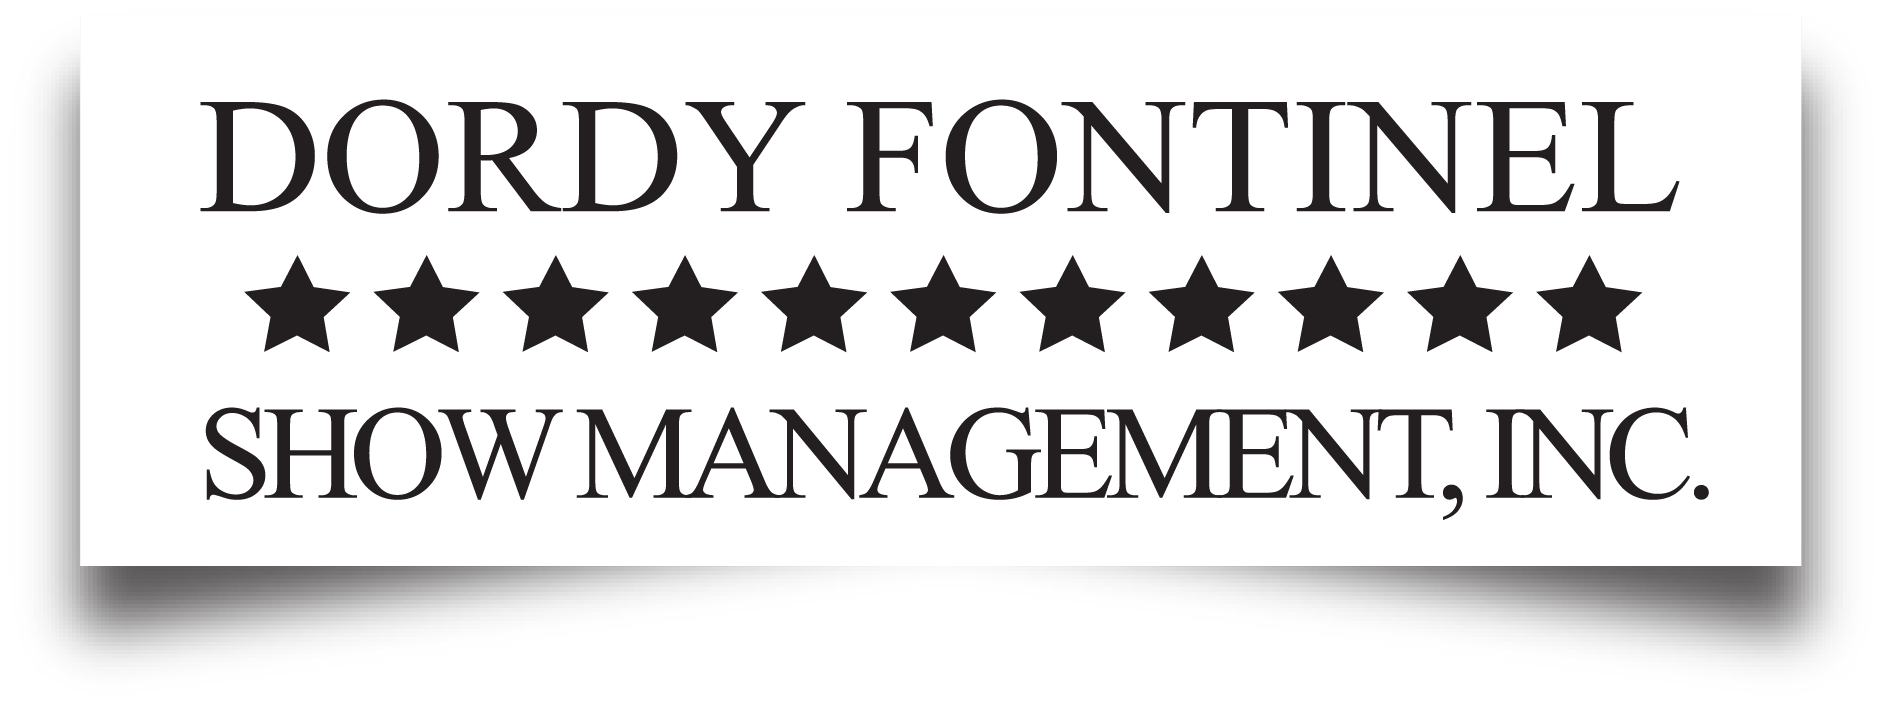 dordy fontinel show management